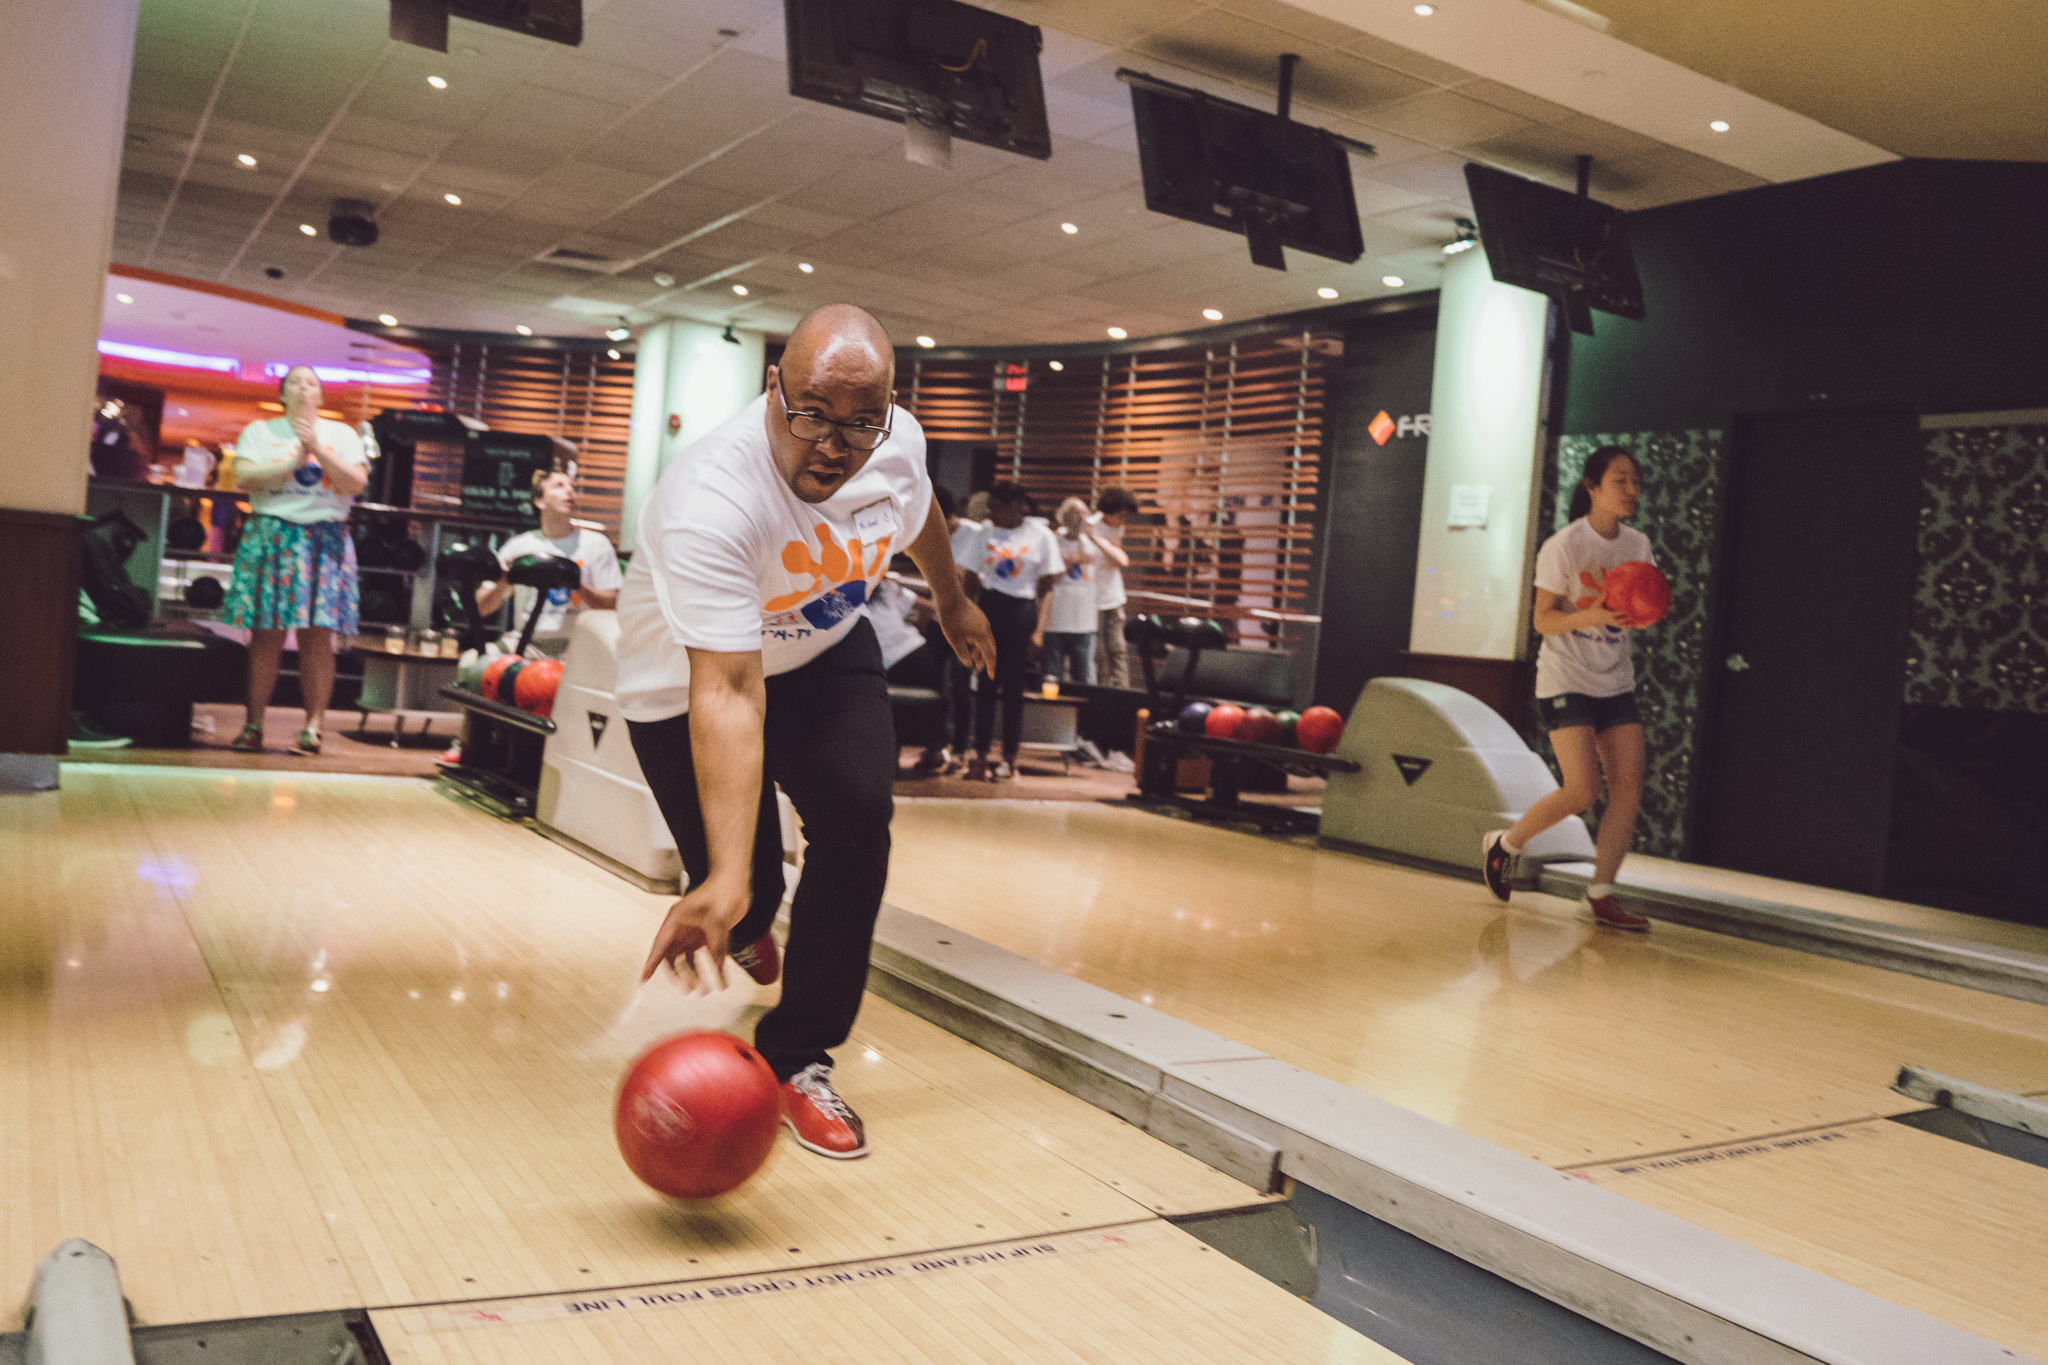 A bowler and fundraiser for All Starts Project participates in their annual Bowl-A-Thon. Photo by Daniel Lee.